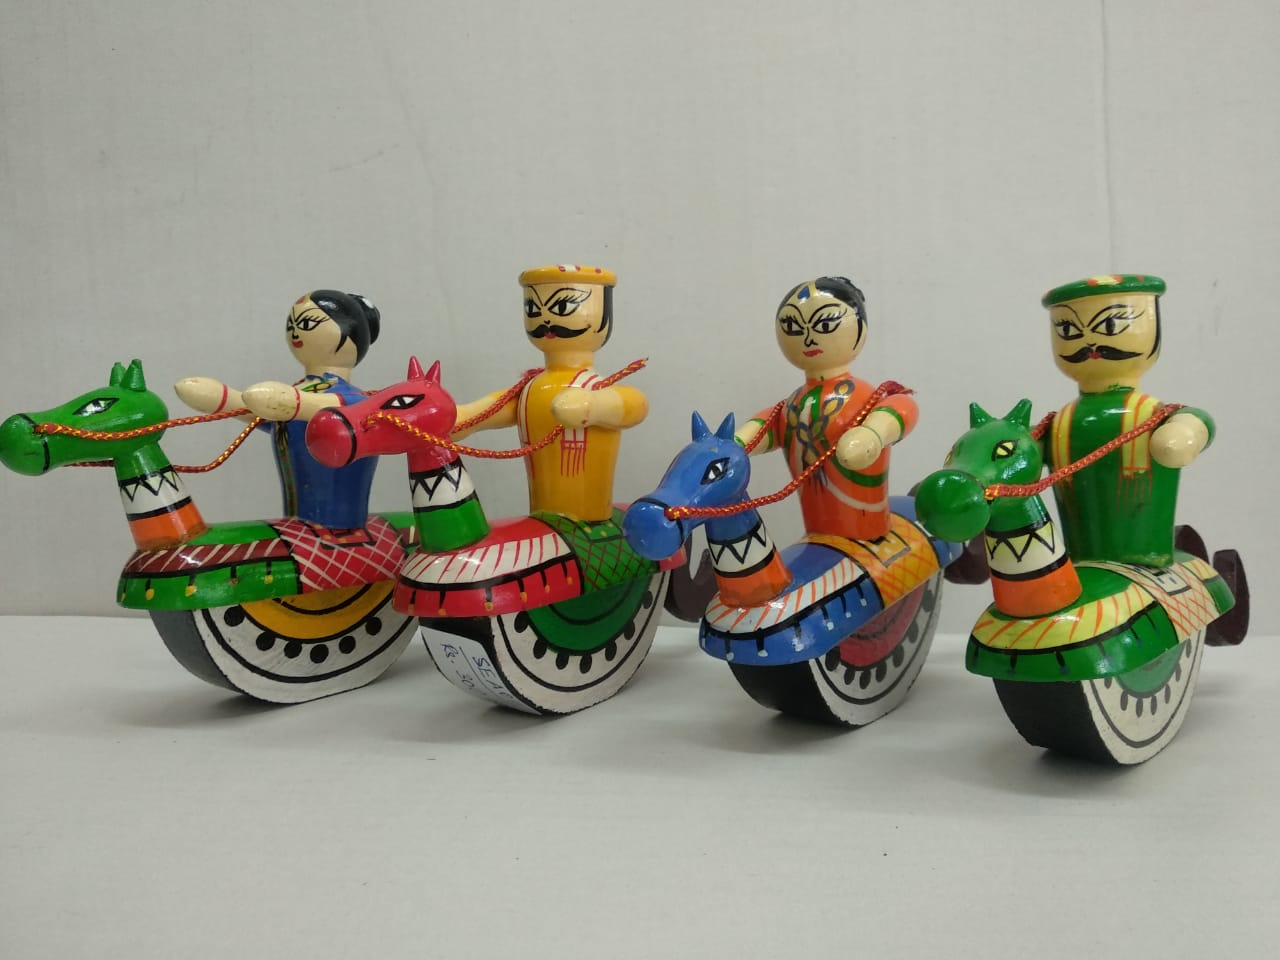 Buy Horse Rider Channapattana Toys (SEA011) Online